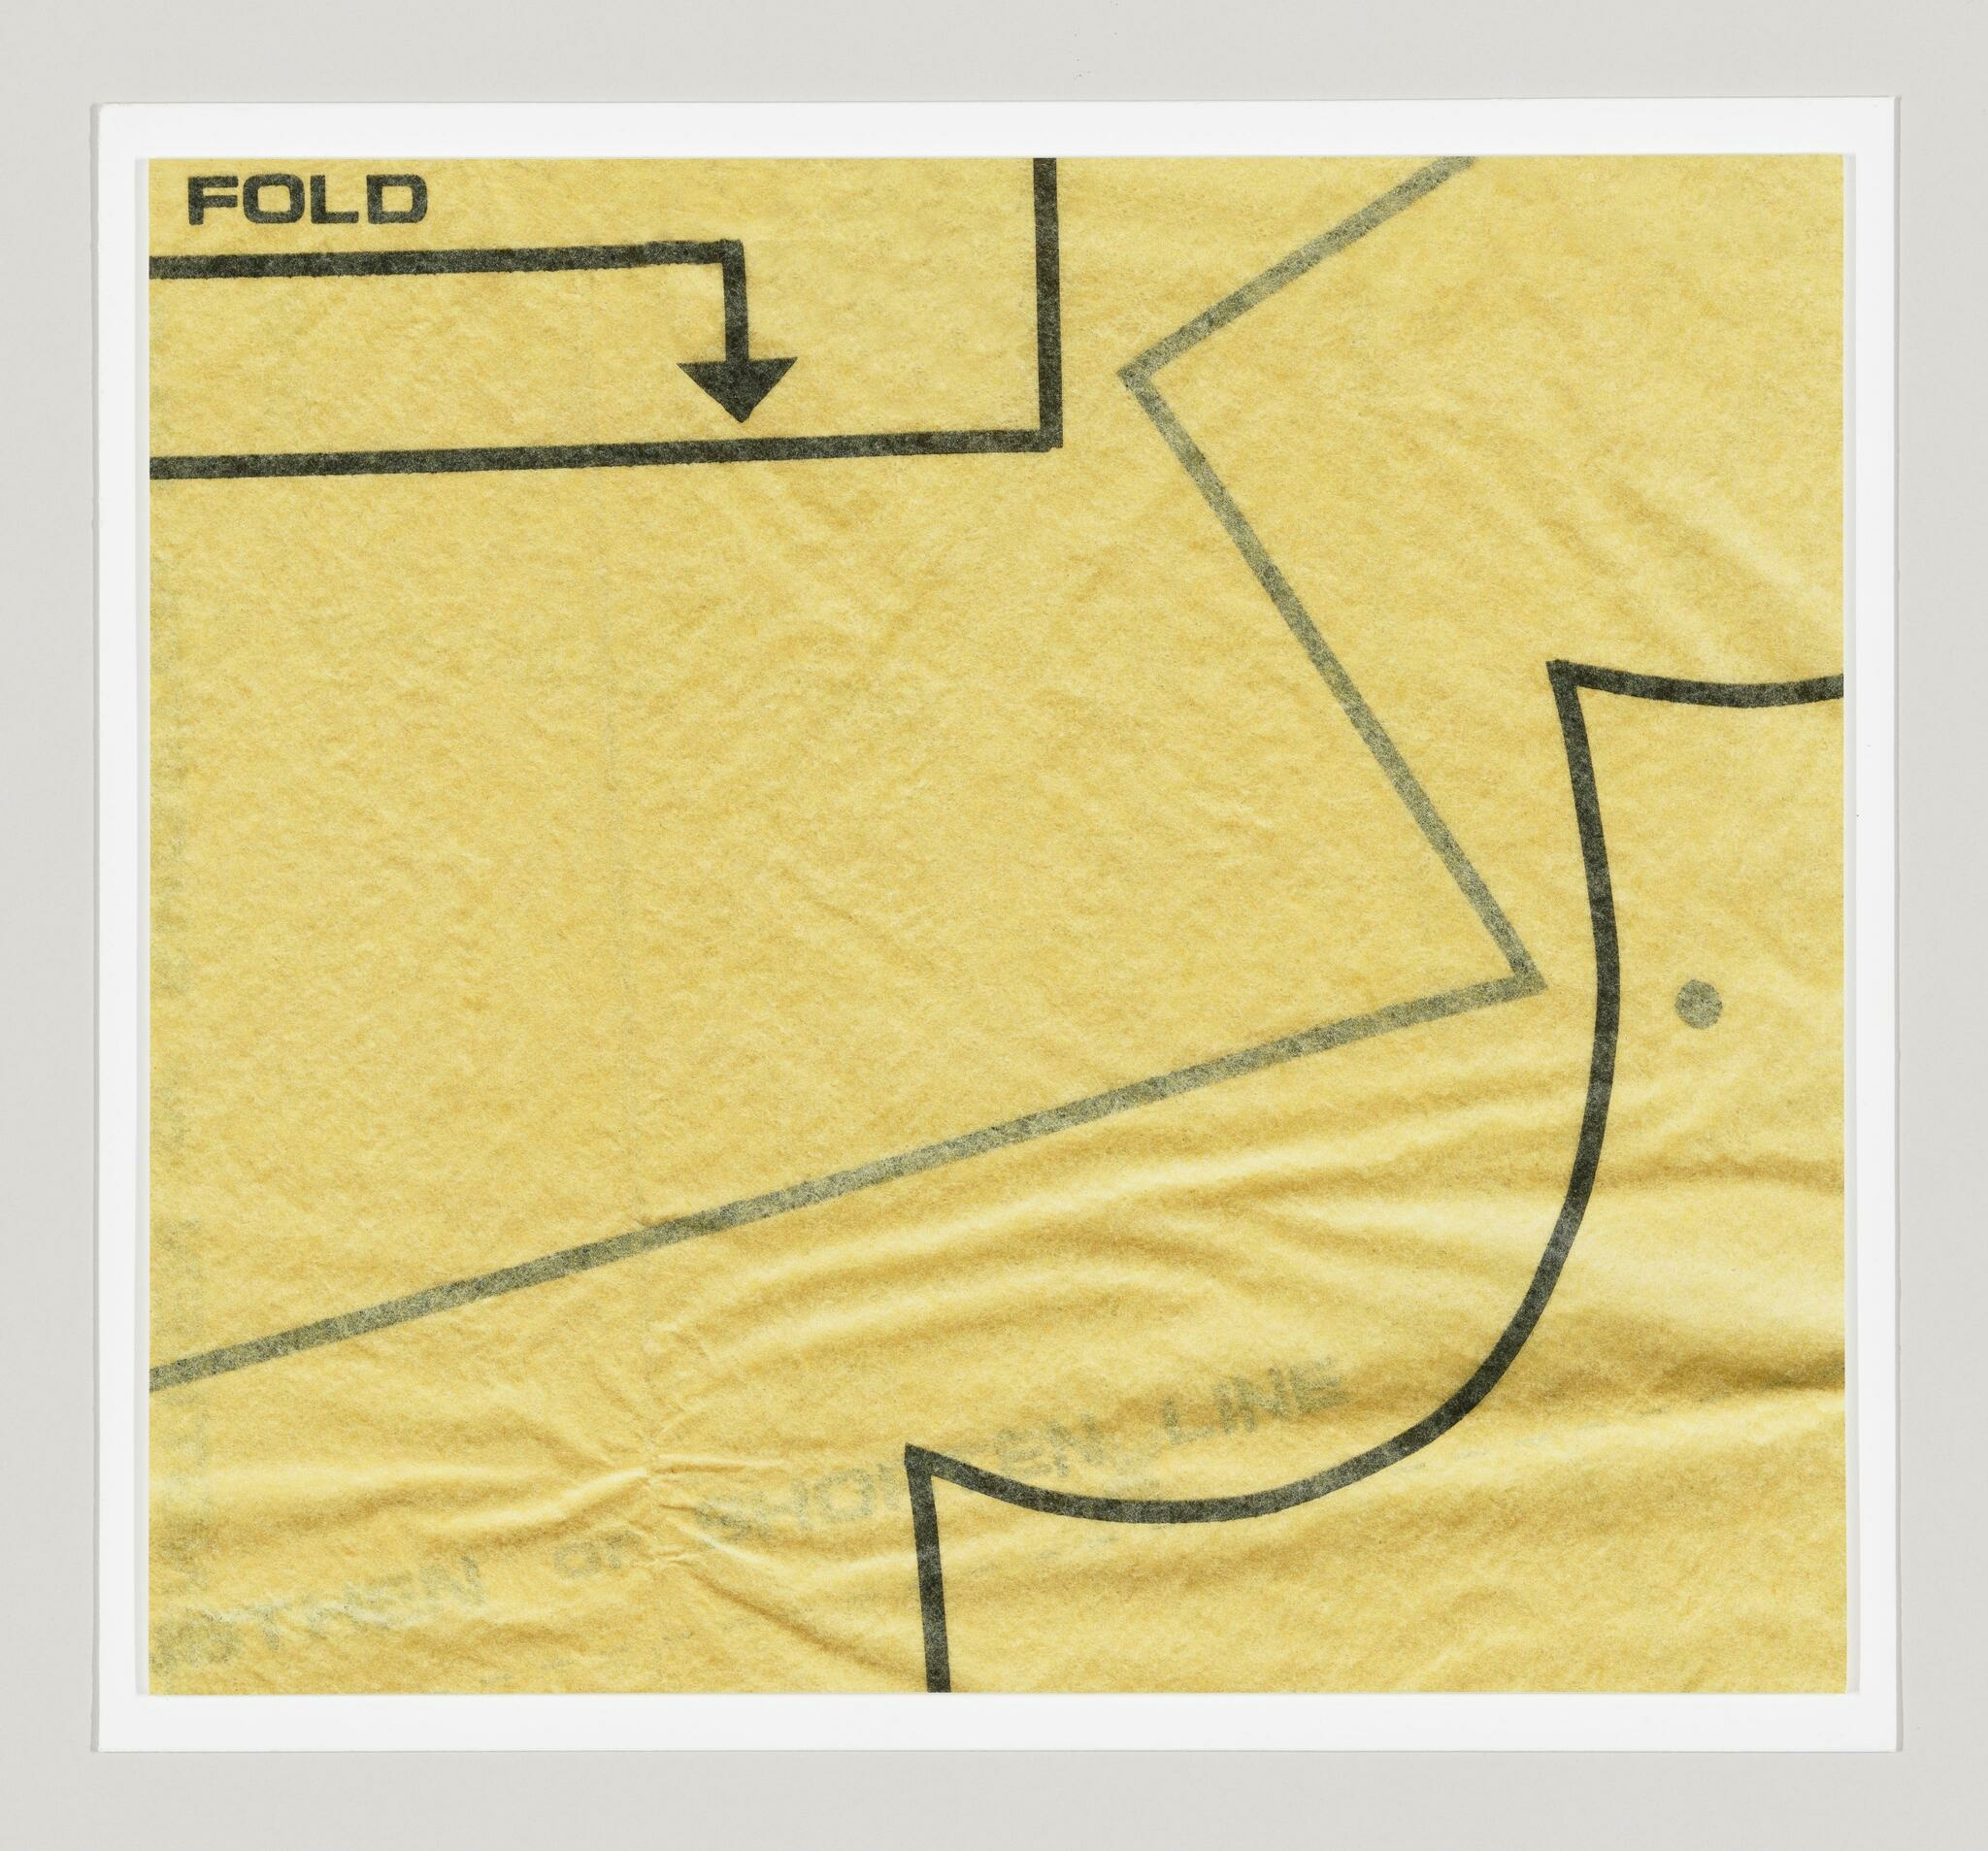 Detail of yellow tissue sewing pattern with printed curves, lines, and text reading FOLD with a directional arrow.